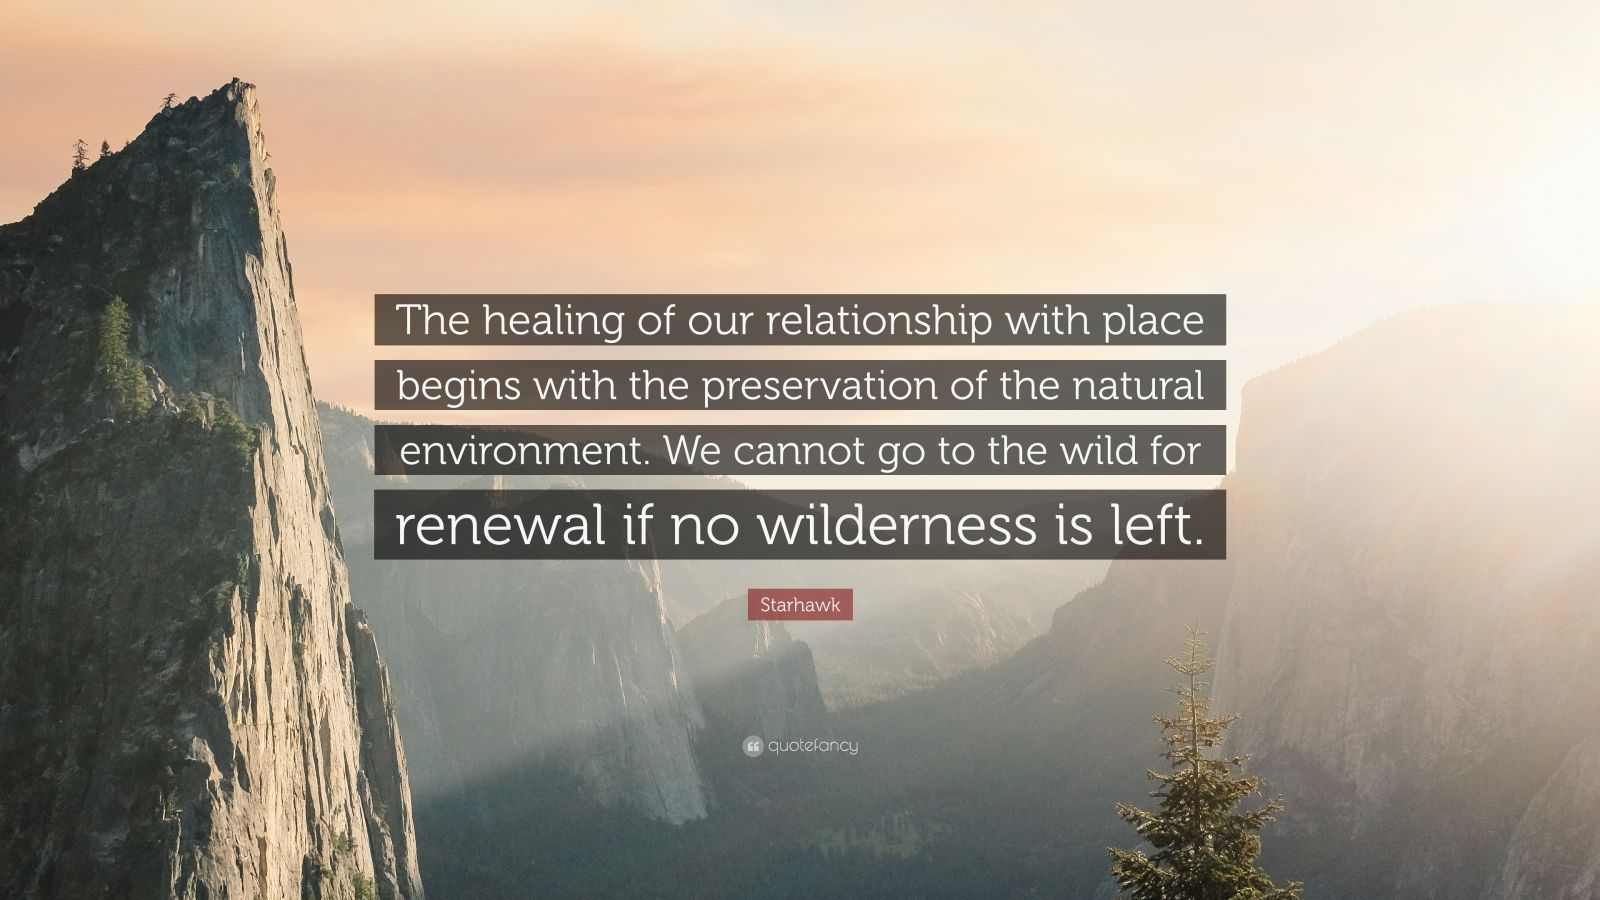 """Starhawk Quote: """"The healing of our relationship with place begins with the preservation of the natural environment. We cannot go to the wild for renewal if no wilderness is left."""""""